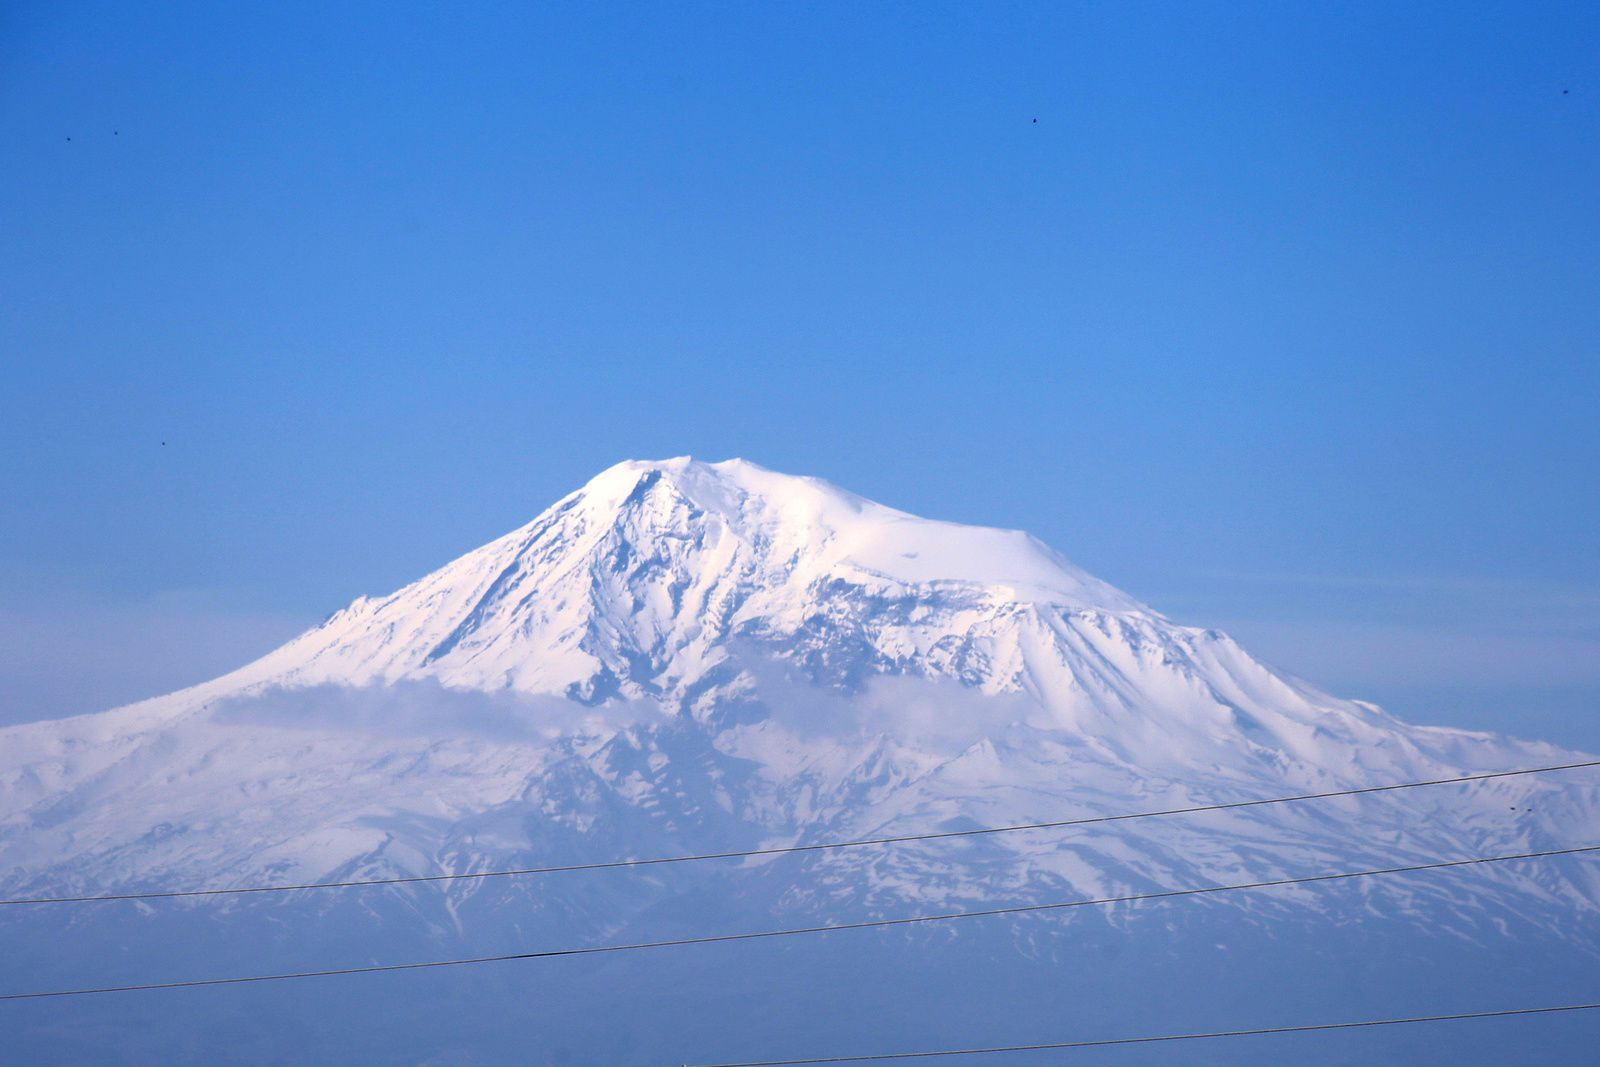 The summit of the Great Ararat in a heat haze - photo © Bernard Duyck 2019